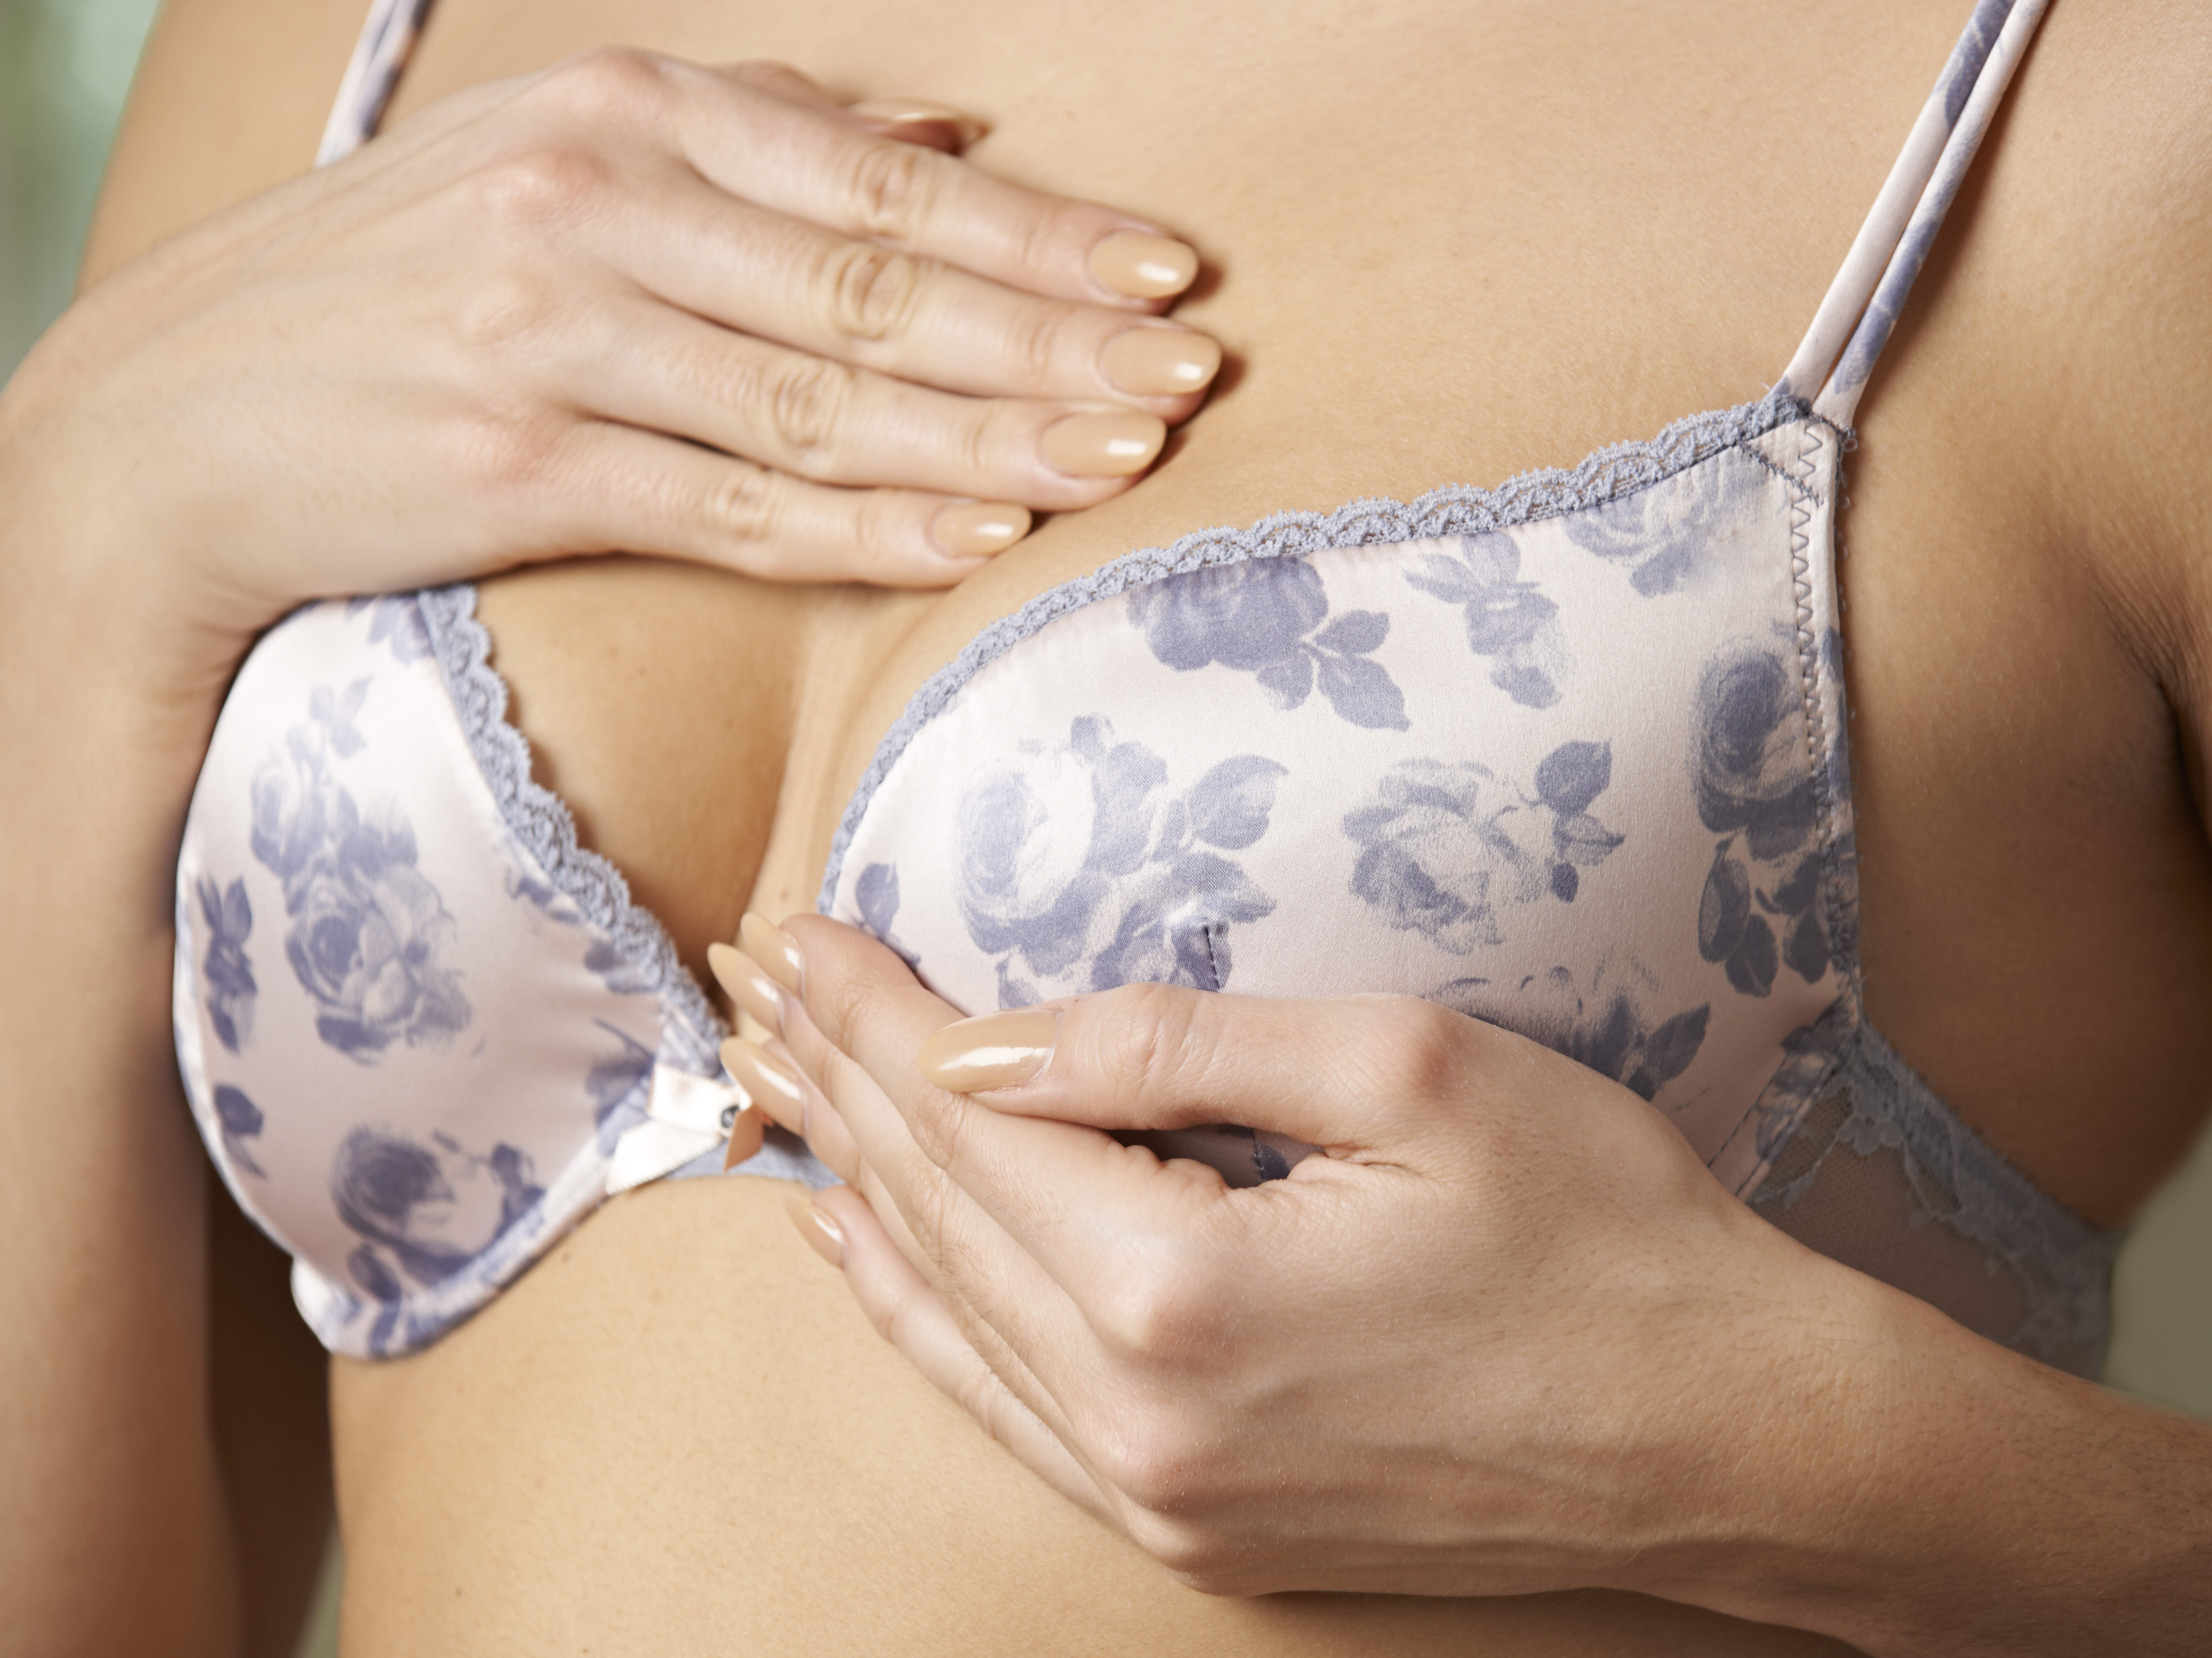 6 Causes of Lumps That Aren't Breast Cancer